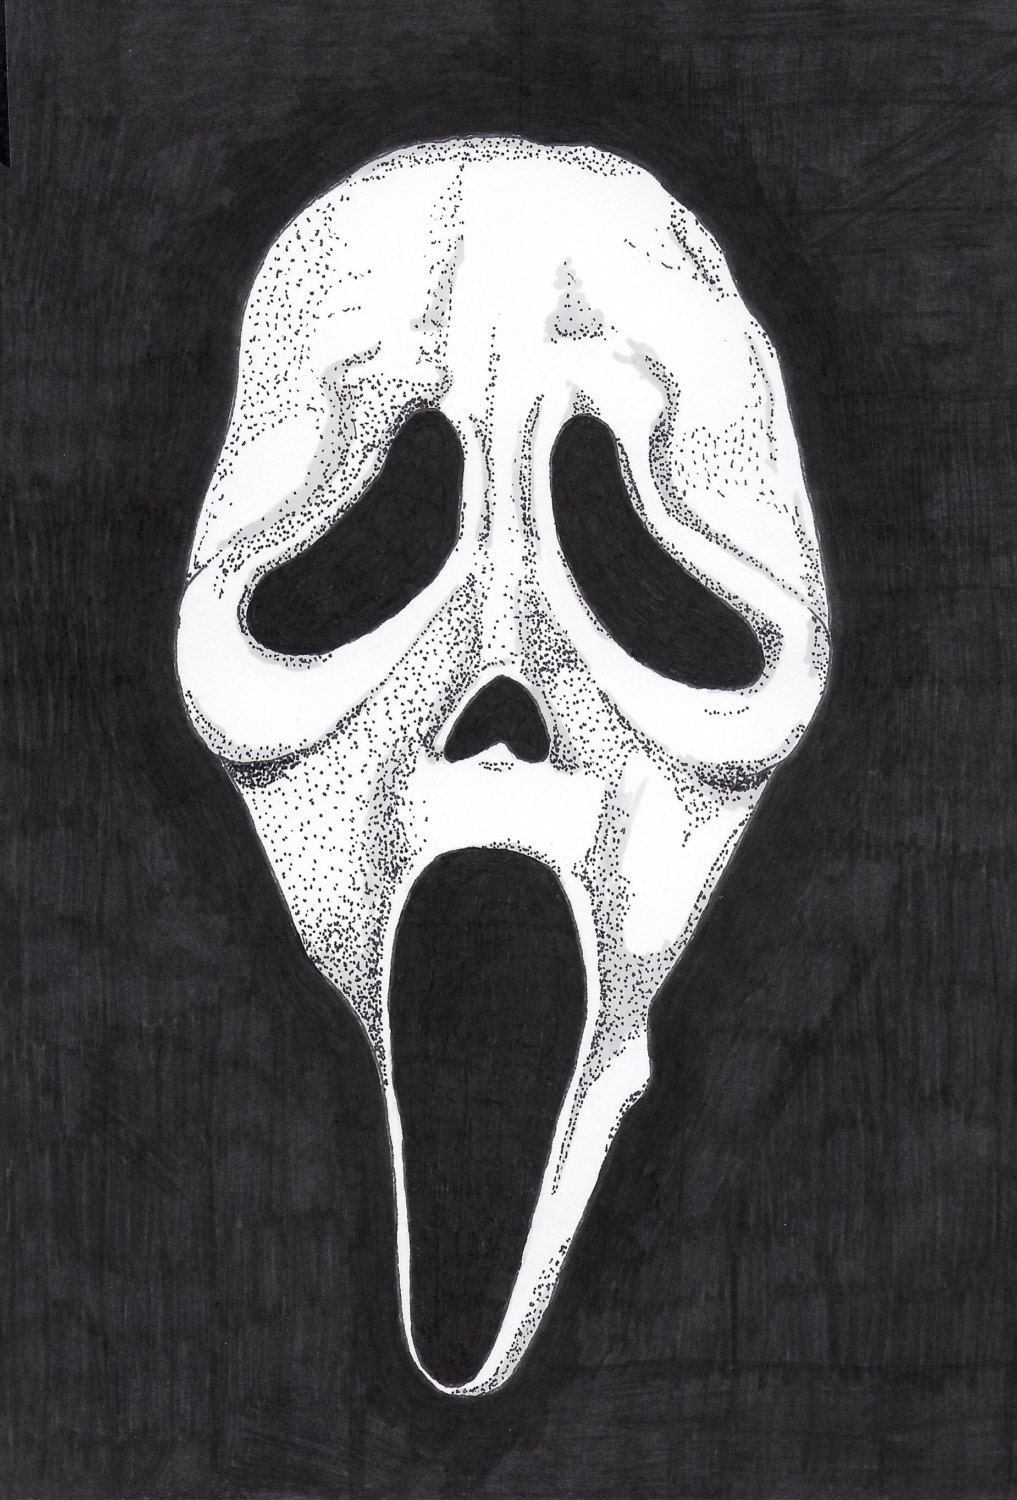 how to make a ghostface mask